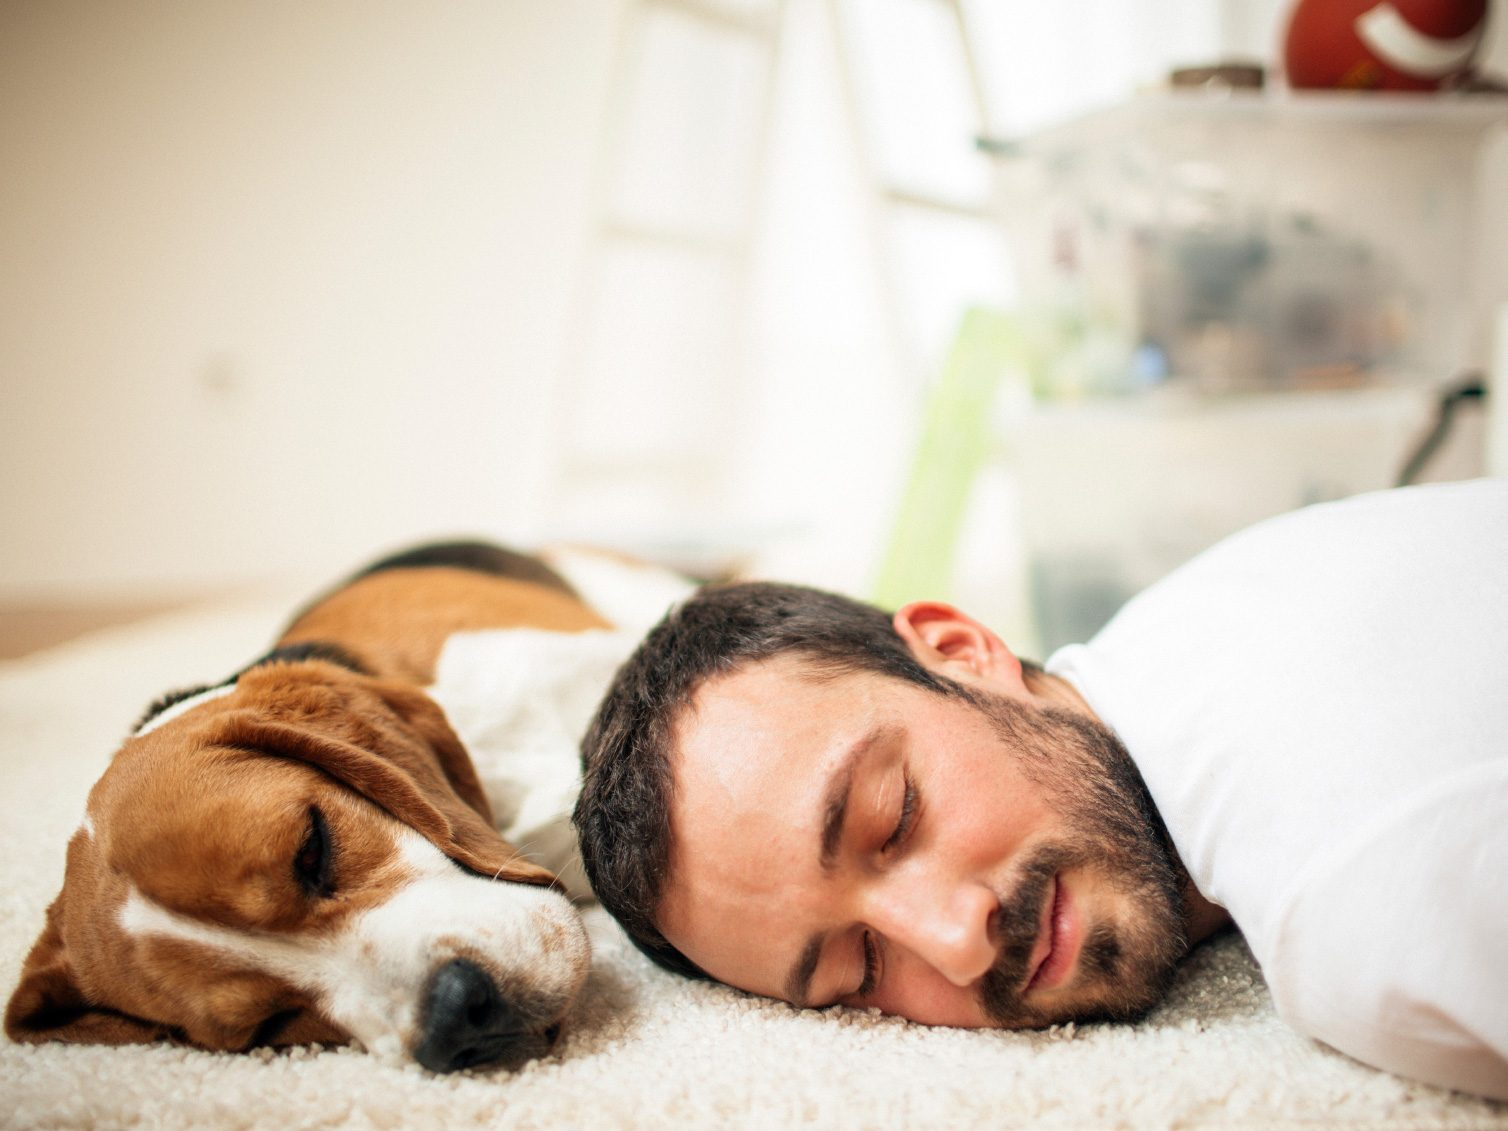 Why Any Sleep is Better Than No Sleep (No Matter How You Feel When You Wake Up)